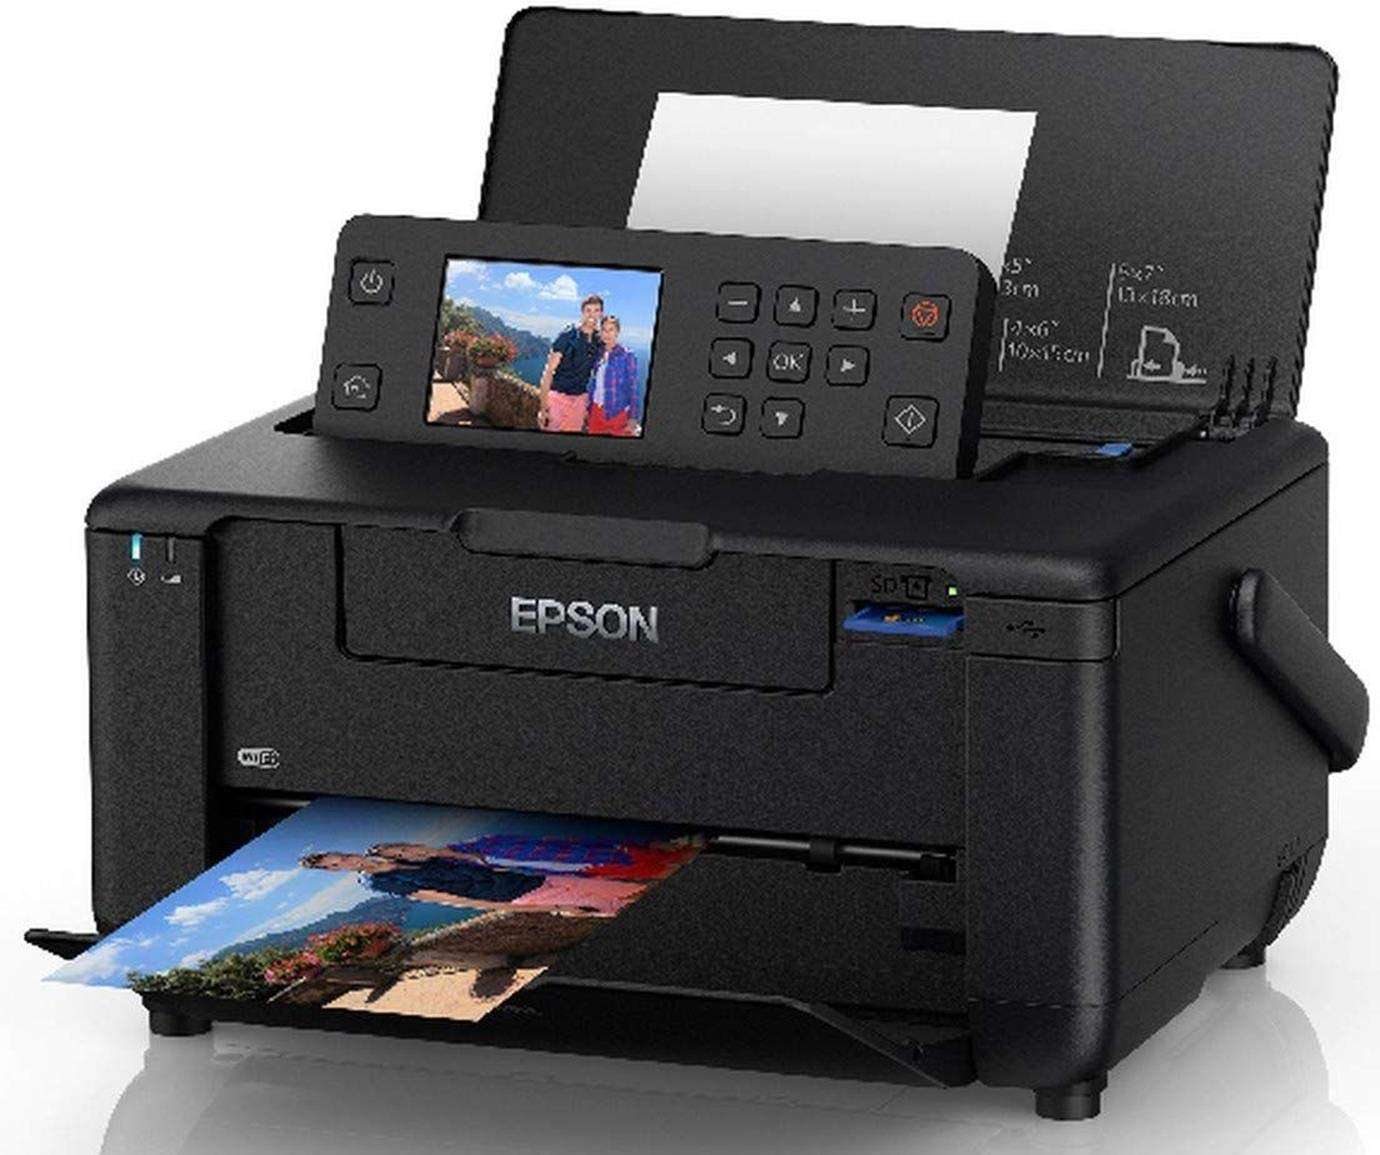 Best Printer for Photo Printing in India 2020